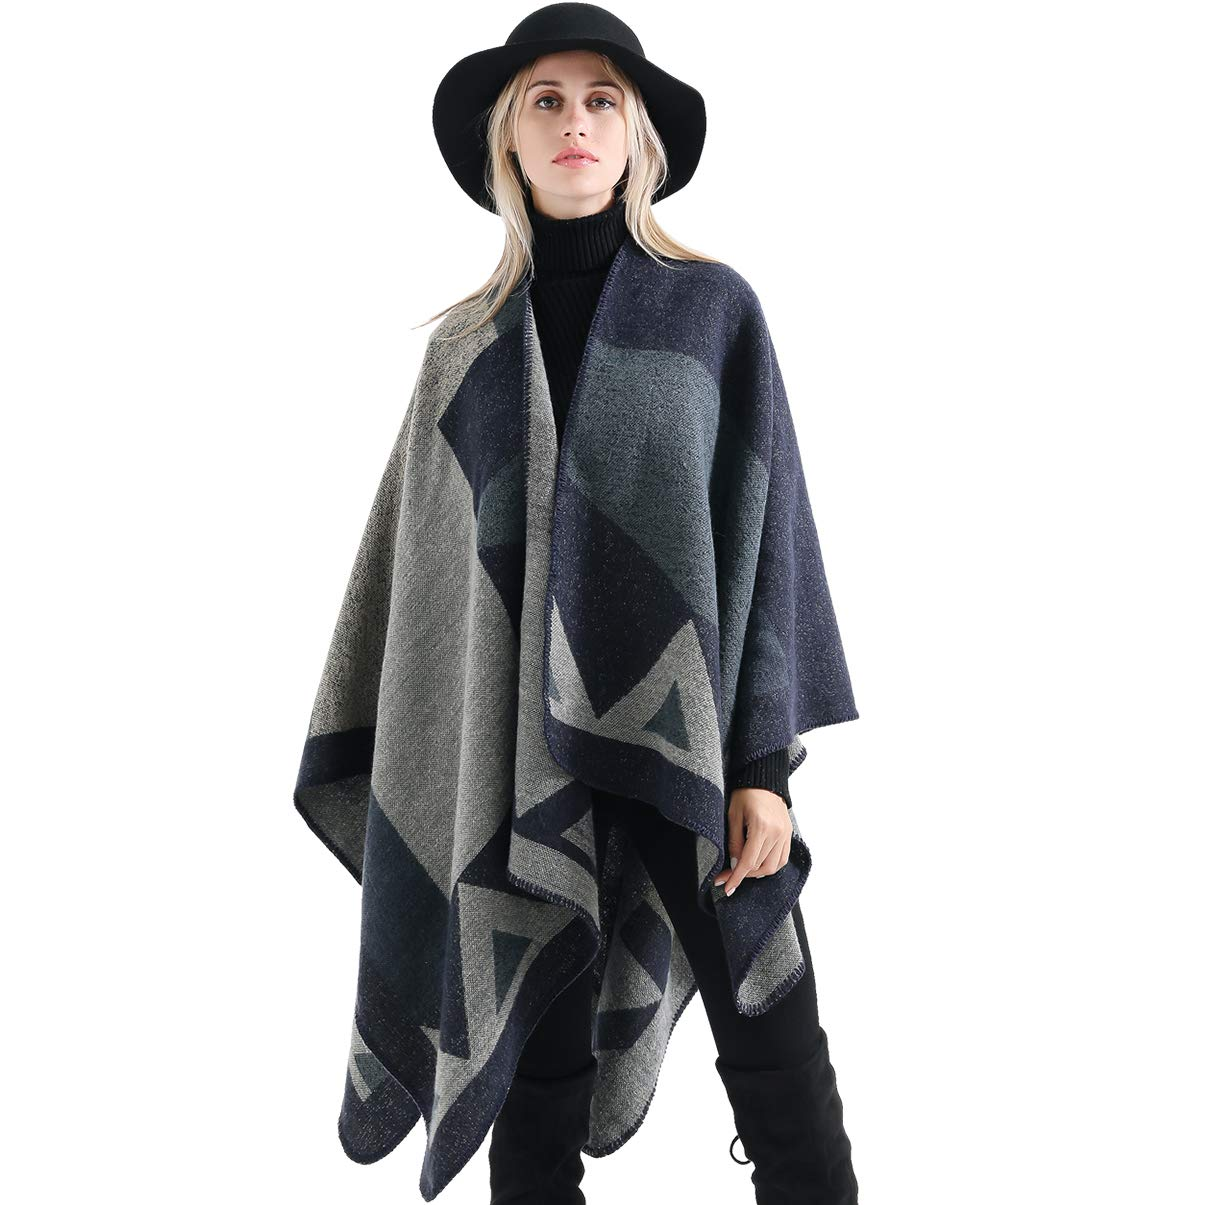 Women Winter Shawl Wrap Reversible Oversized Blanket Poncho Cape Cardigan Knitted Coat